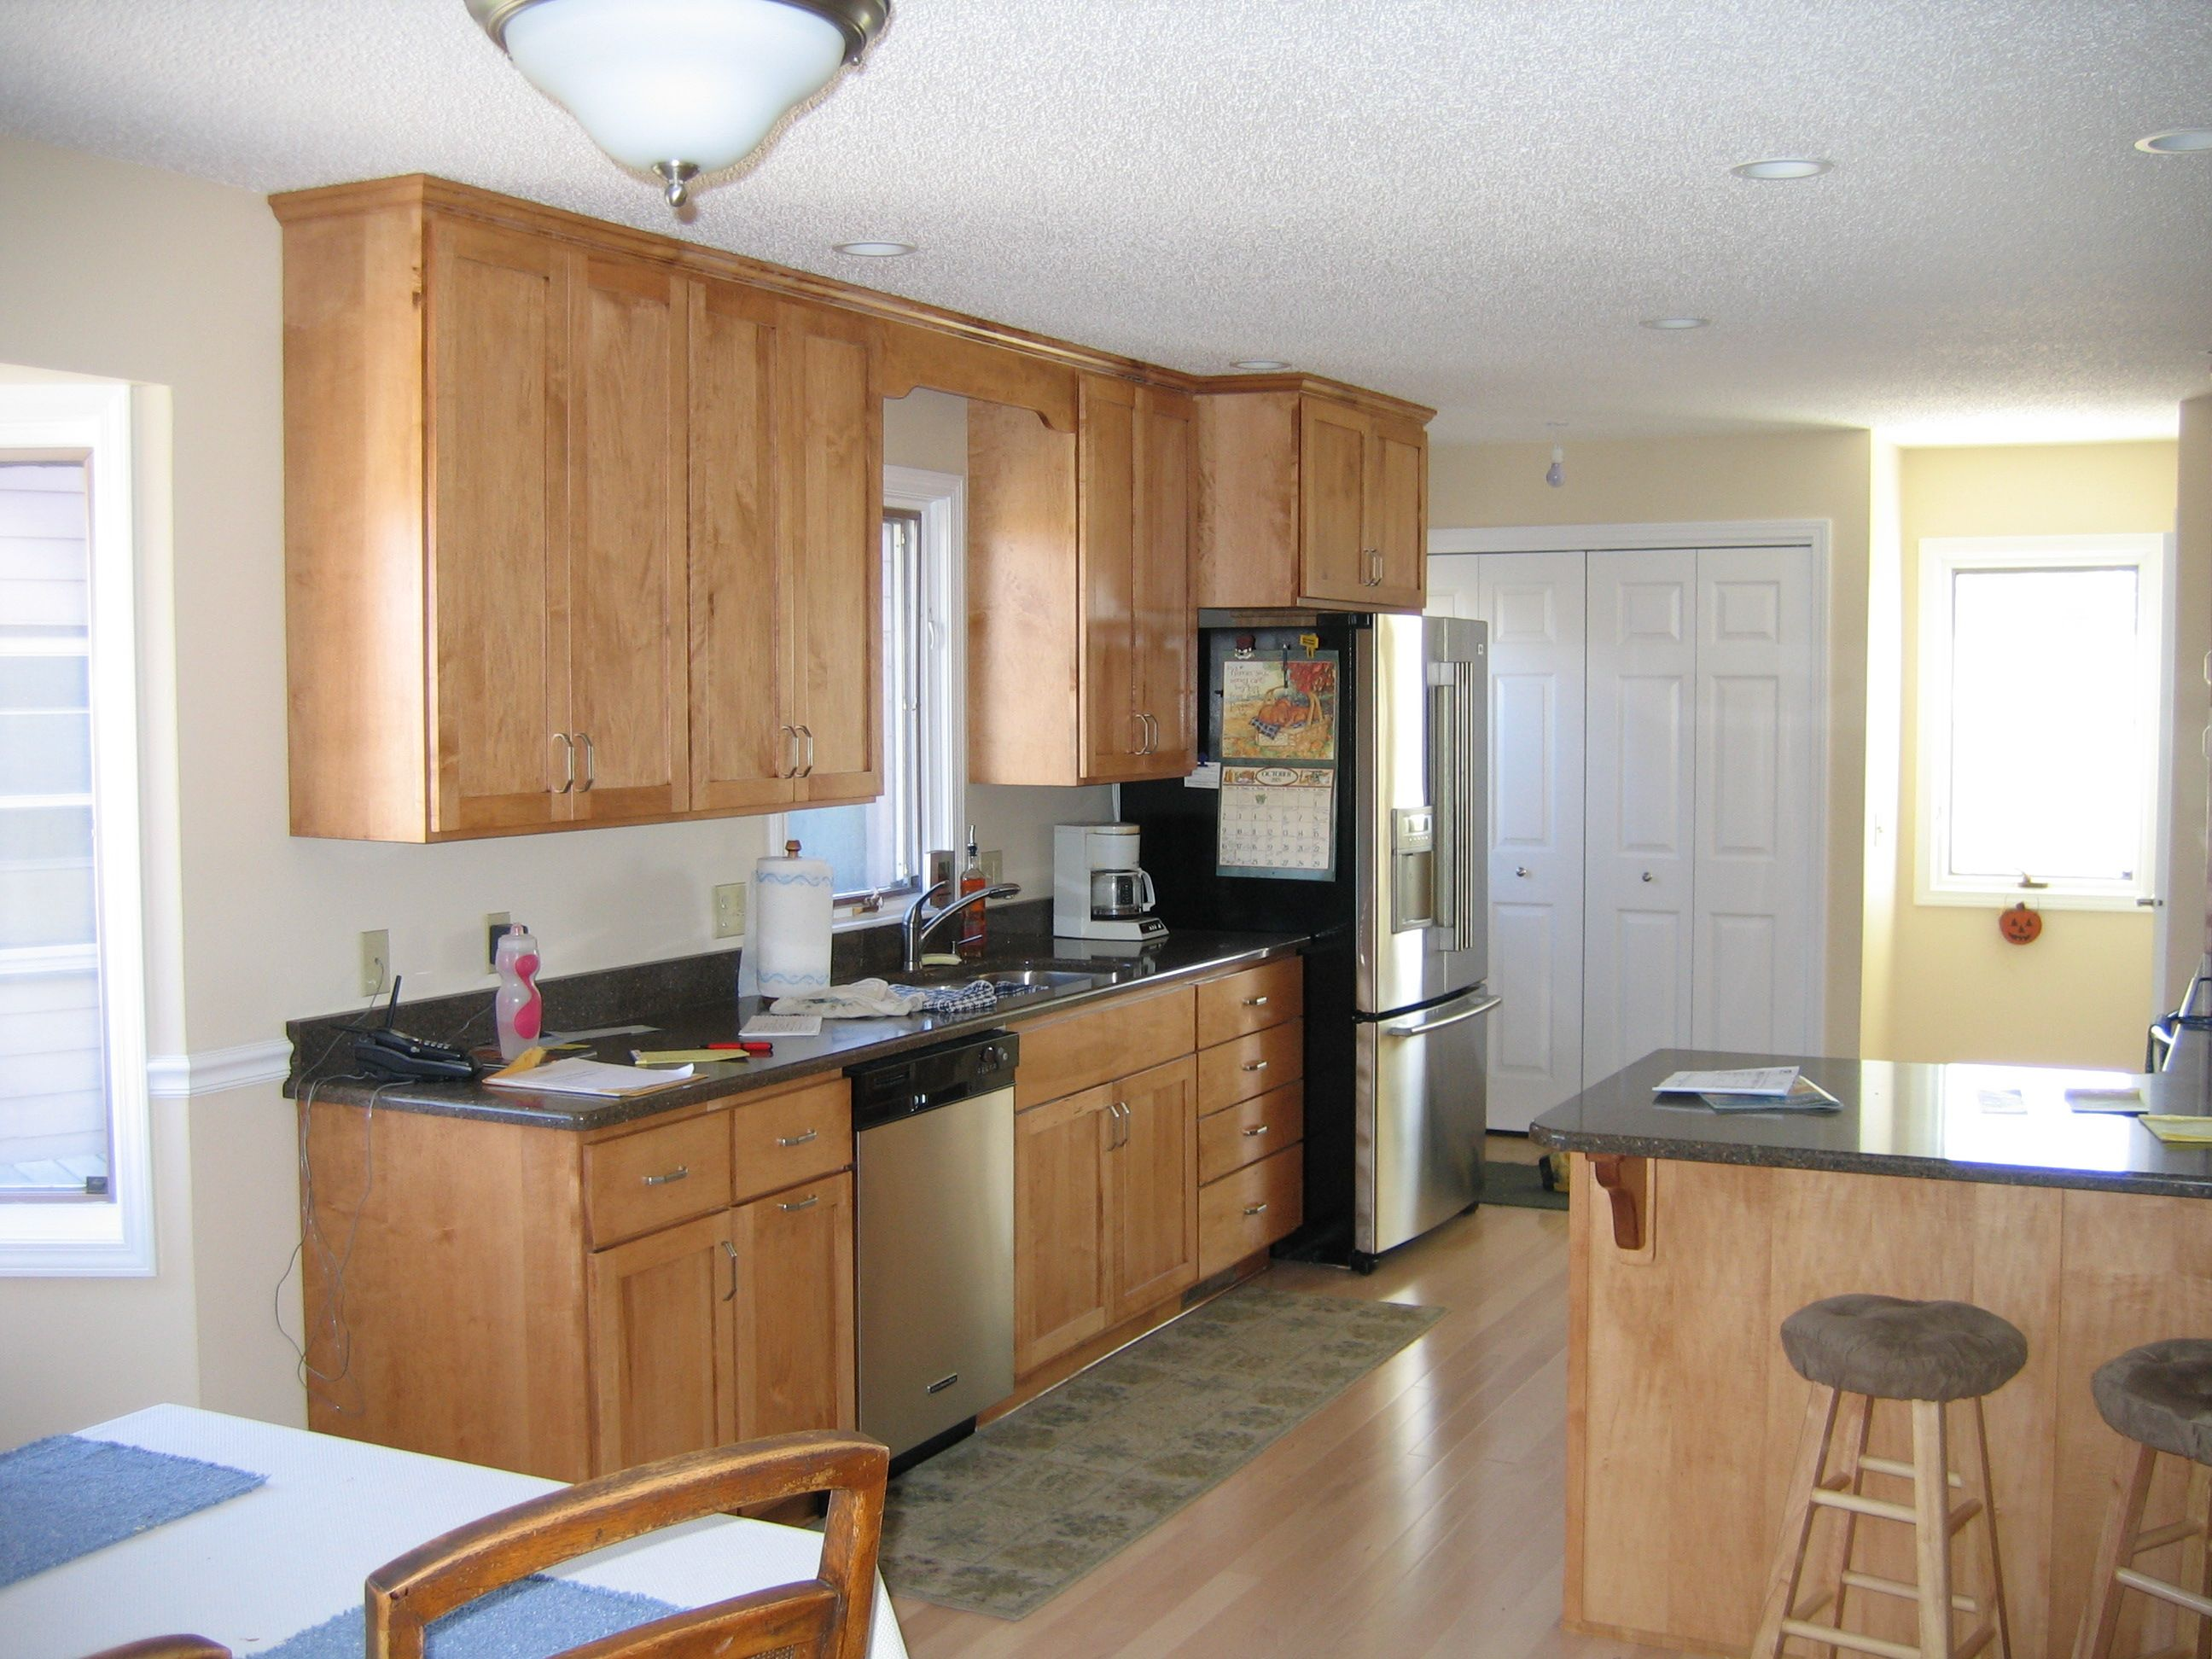 Light Maple Cabinets To Ceiling Google Search Custom Kitchen Cabinets Maple Kitchen Cabinets Kitchen Cabinets